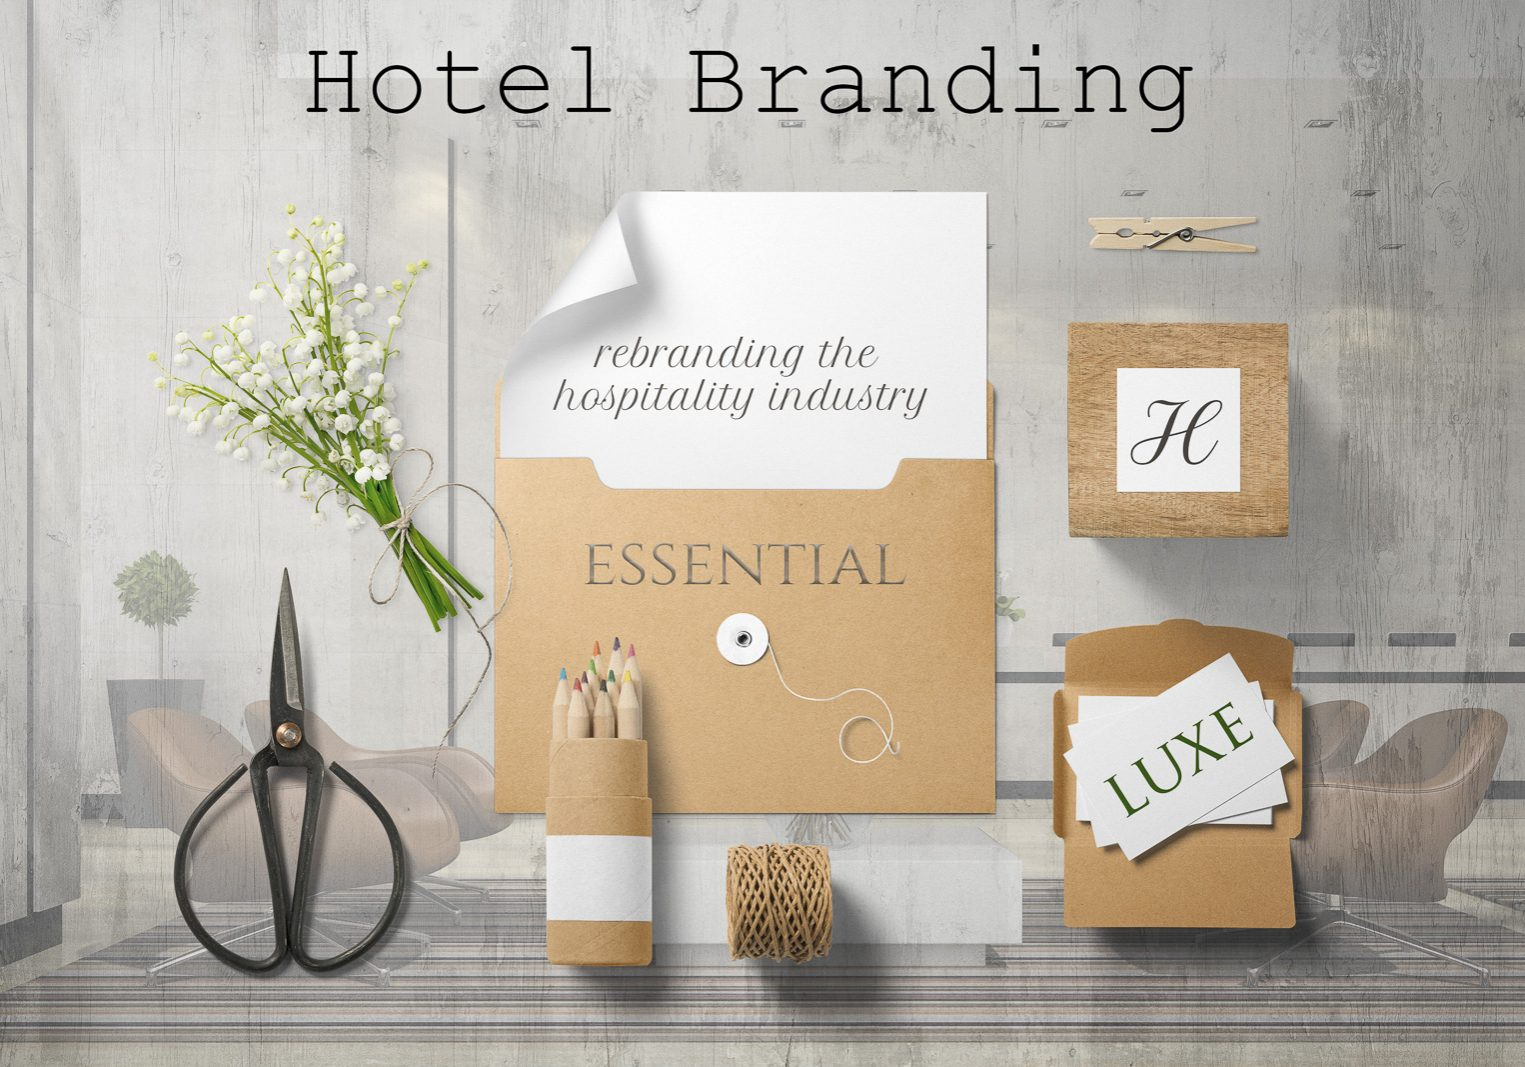 New York Hotel Marketing - Effective hotel marketing strategies for luxury and boutique hotels.